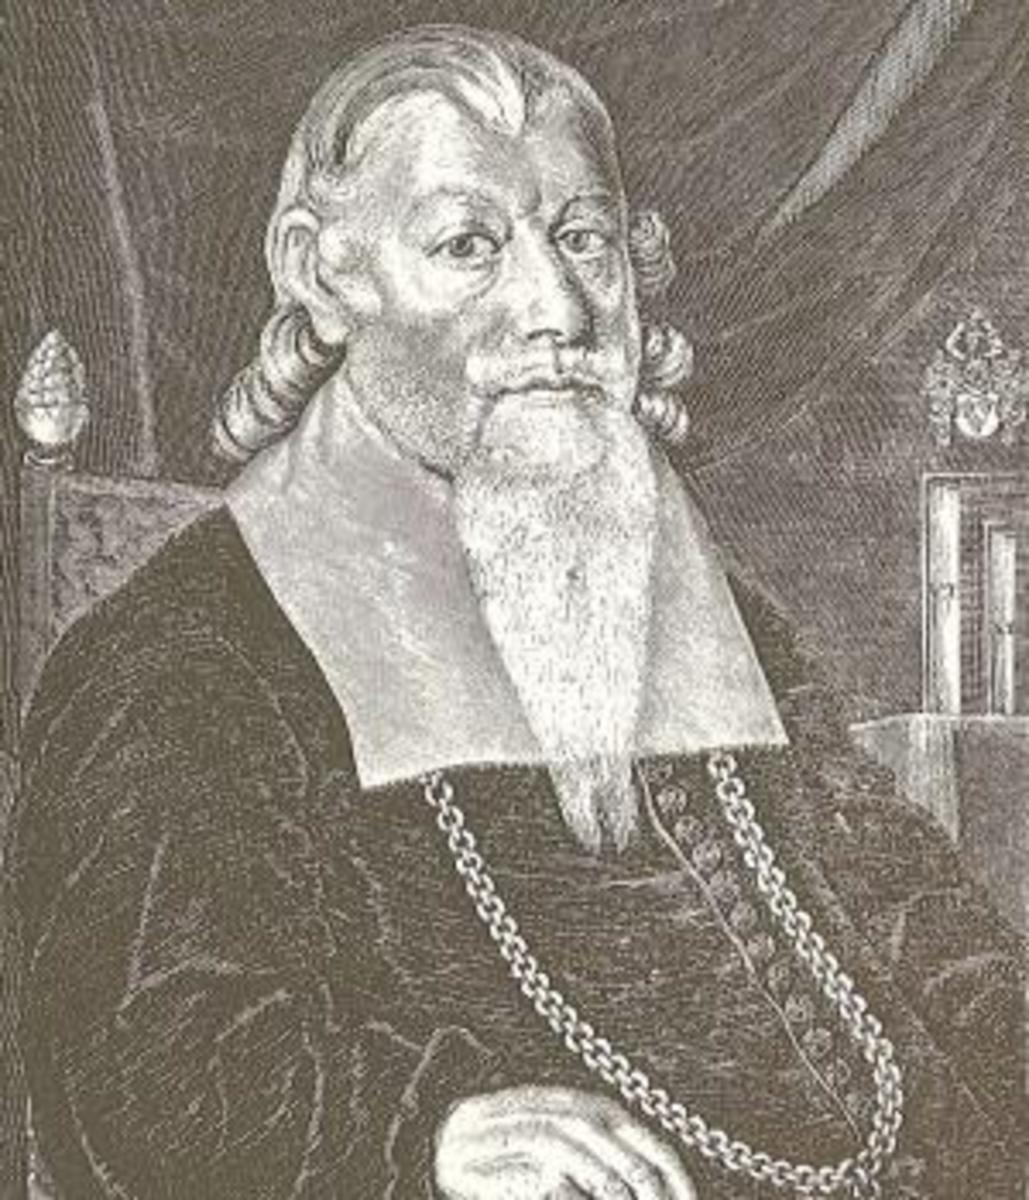 Bishop Peder Winstrup